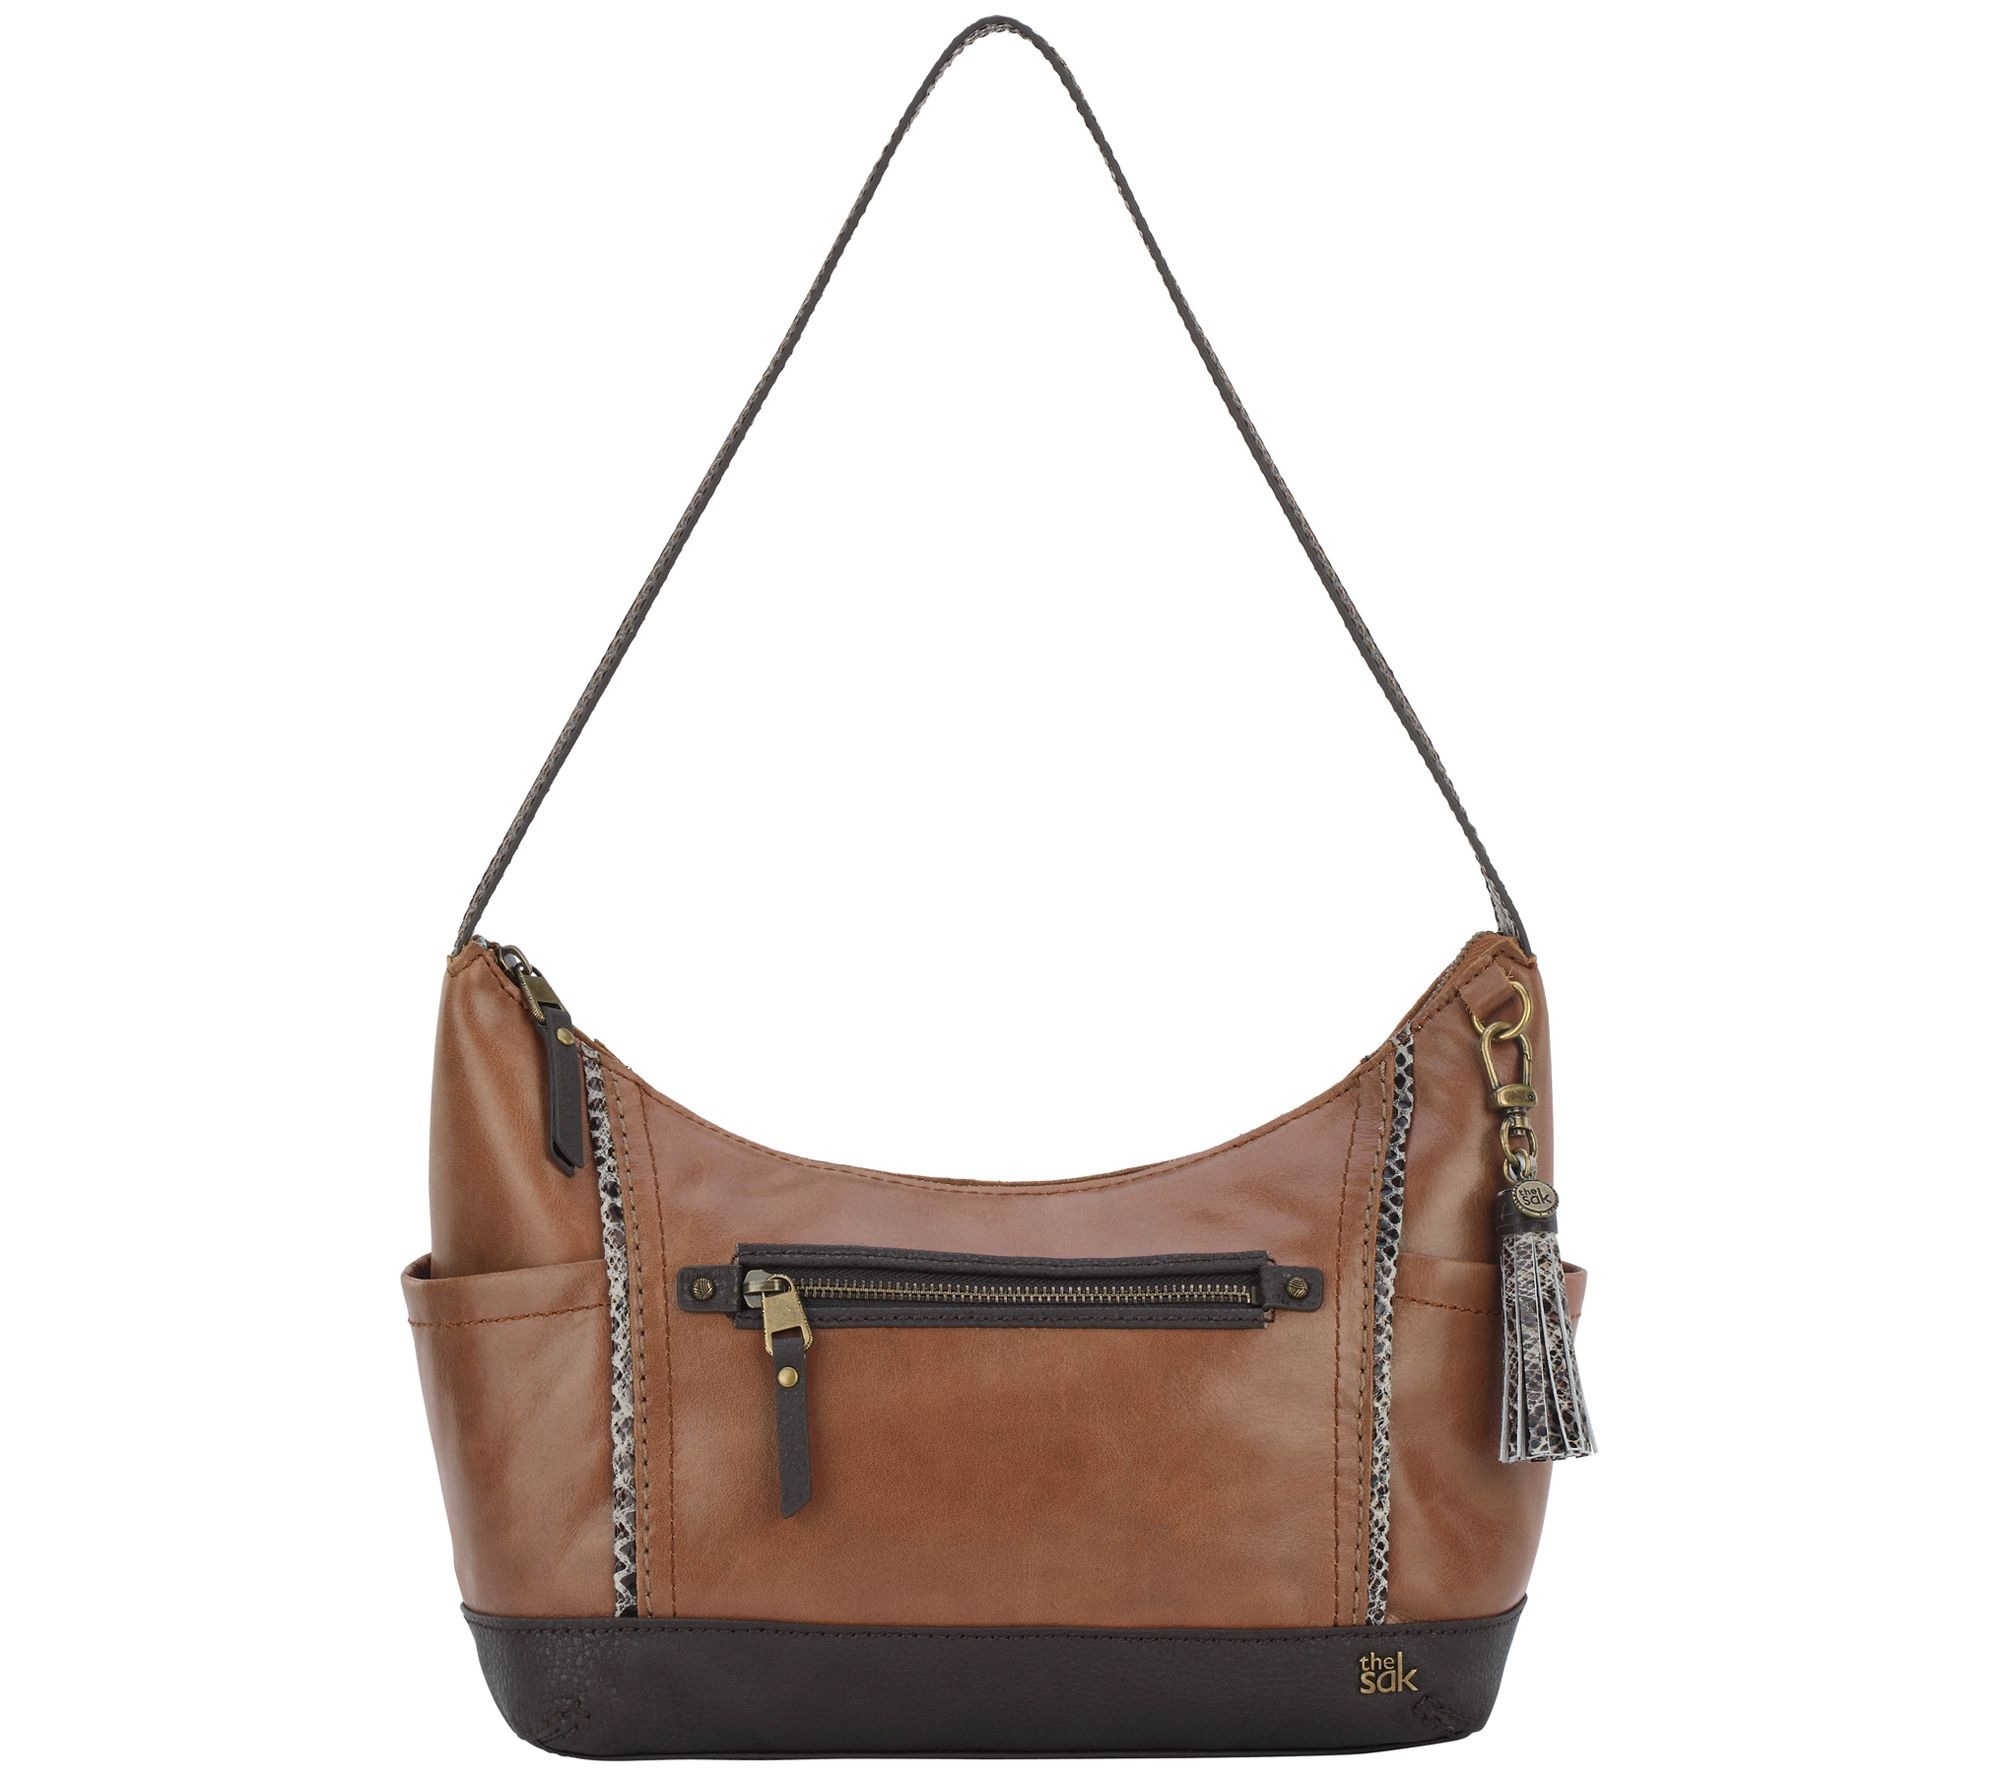 647dc80e77 The Sak Kendra II Leather Hobo Handbag — QVC.com